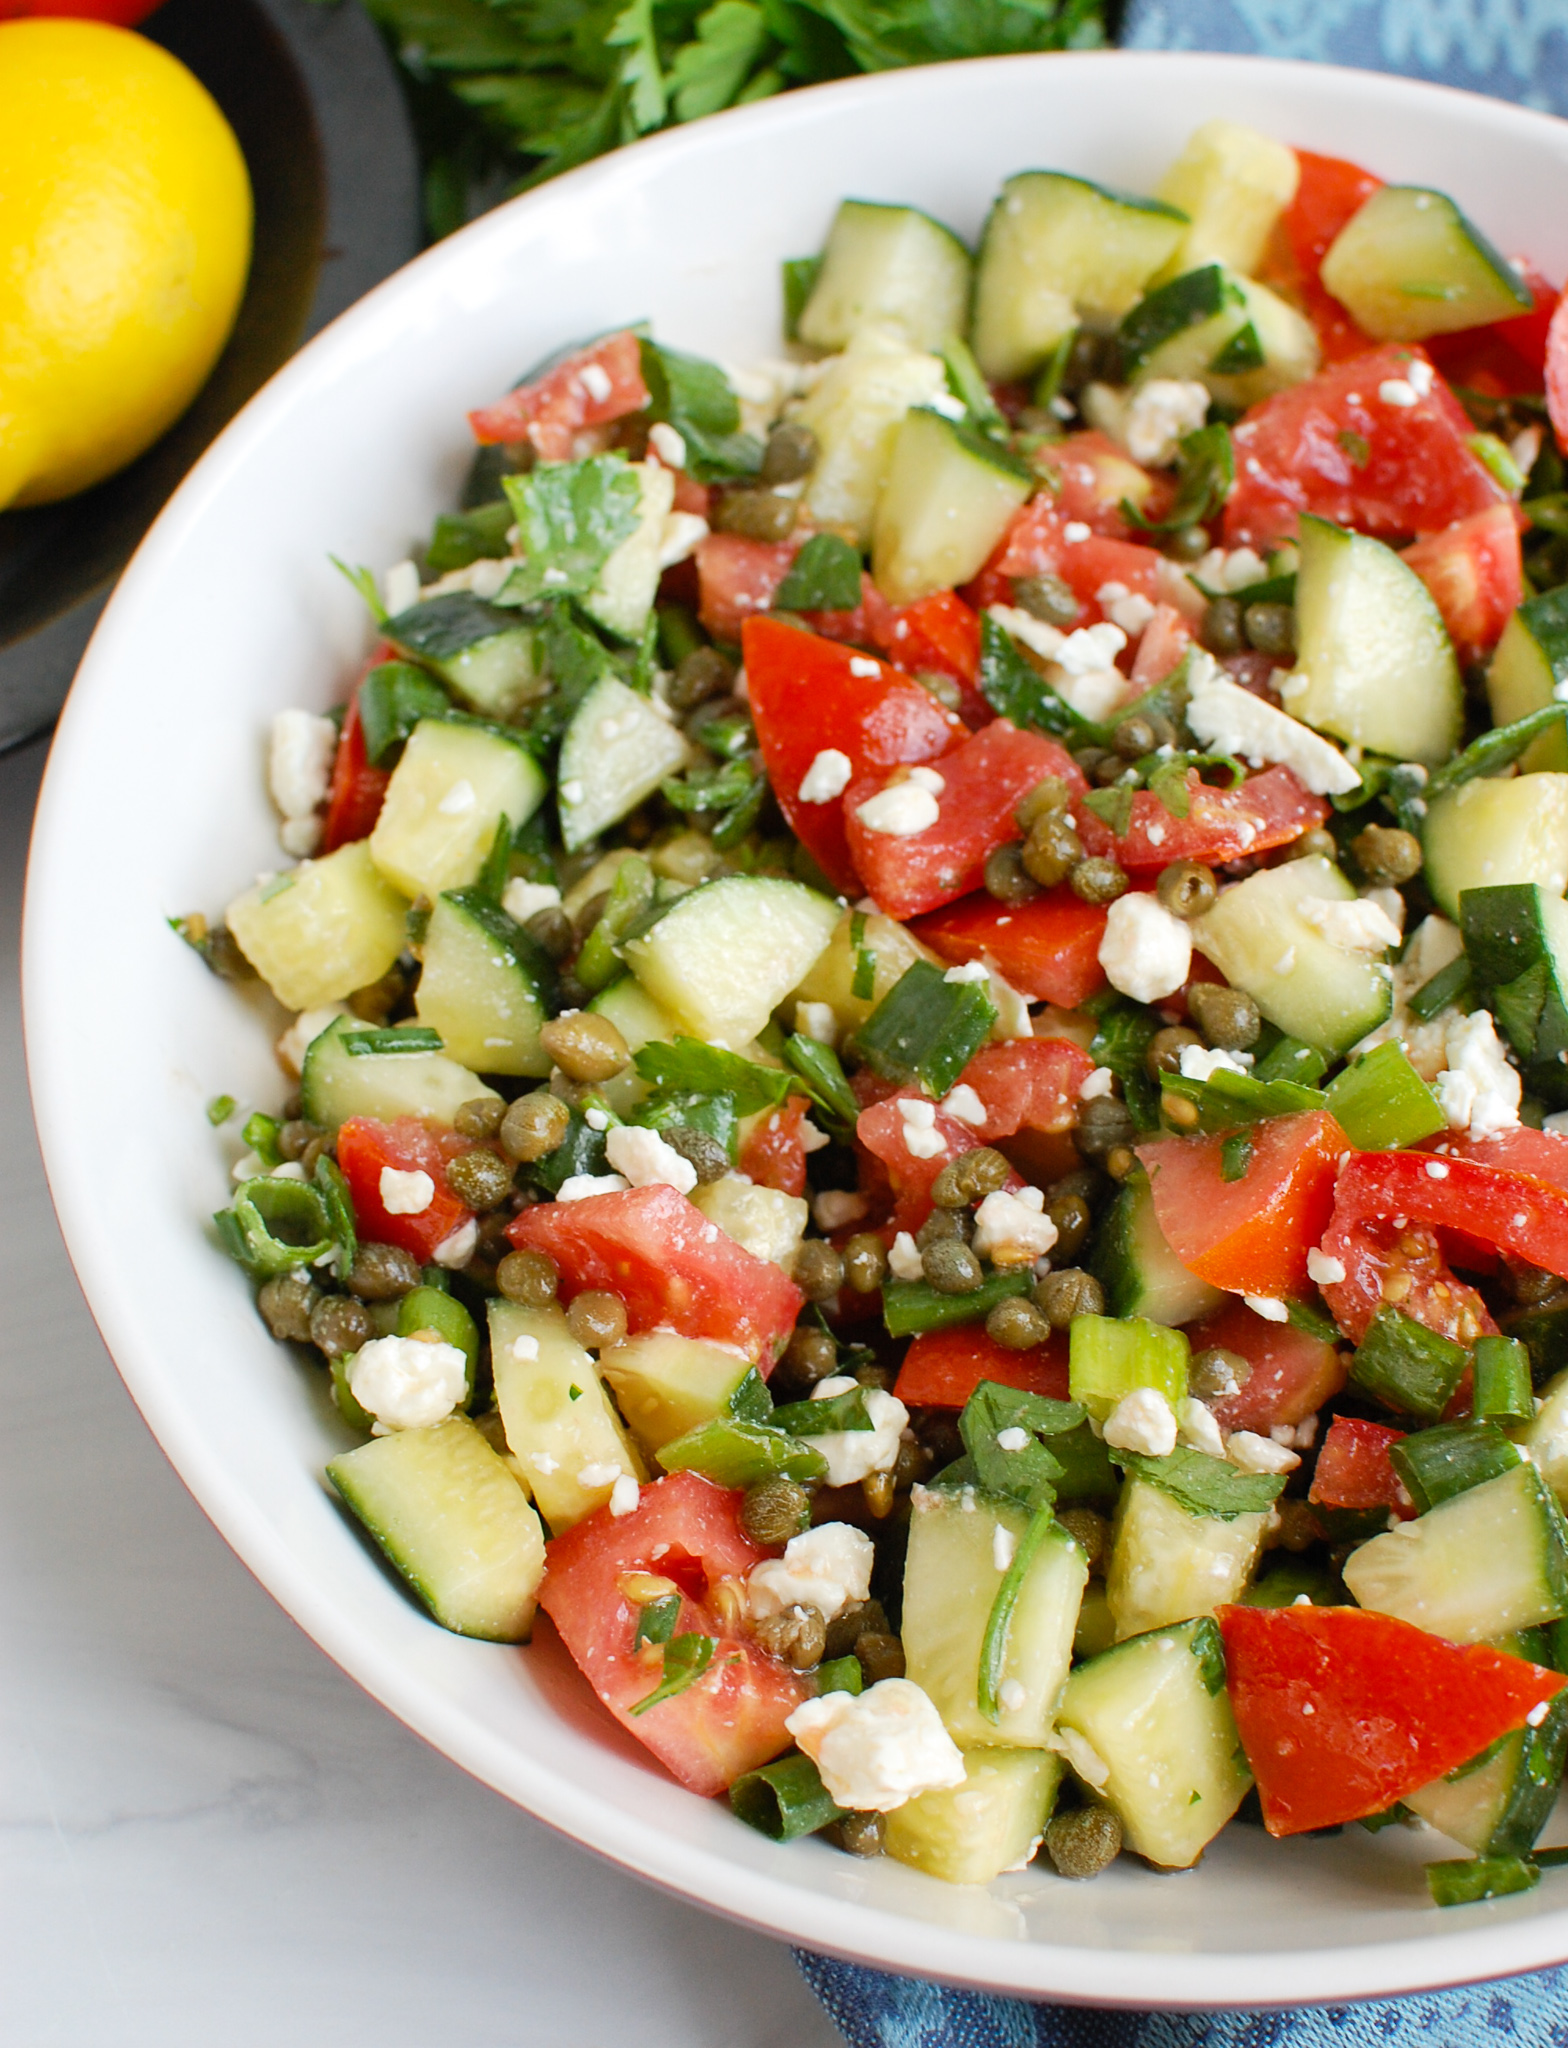 Tomato and Cucumber Salad with Capers in white bowl